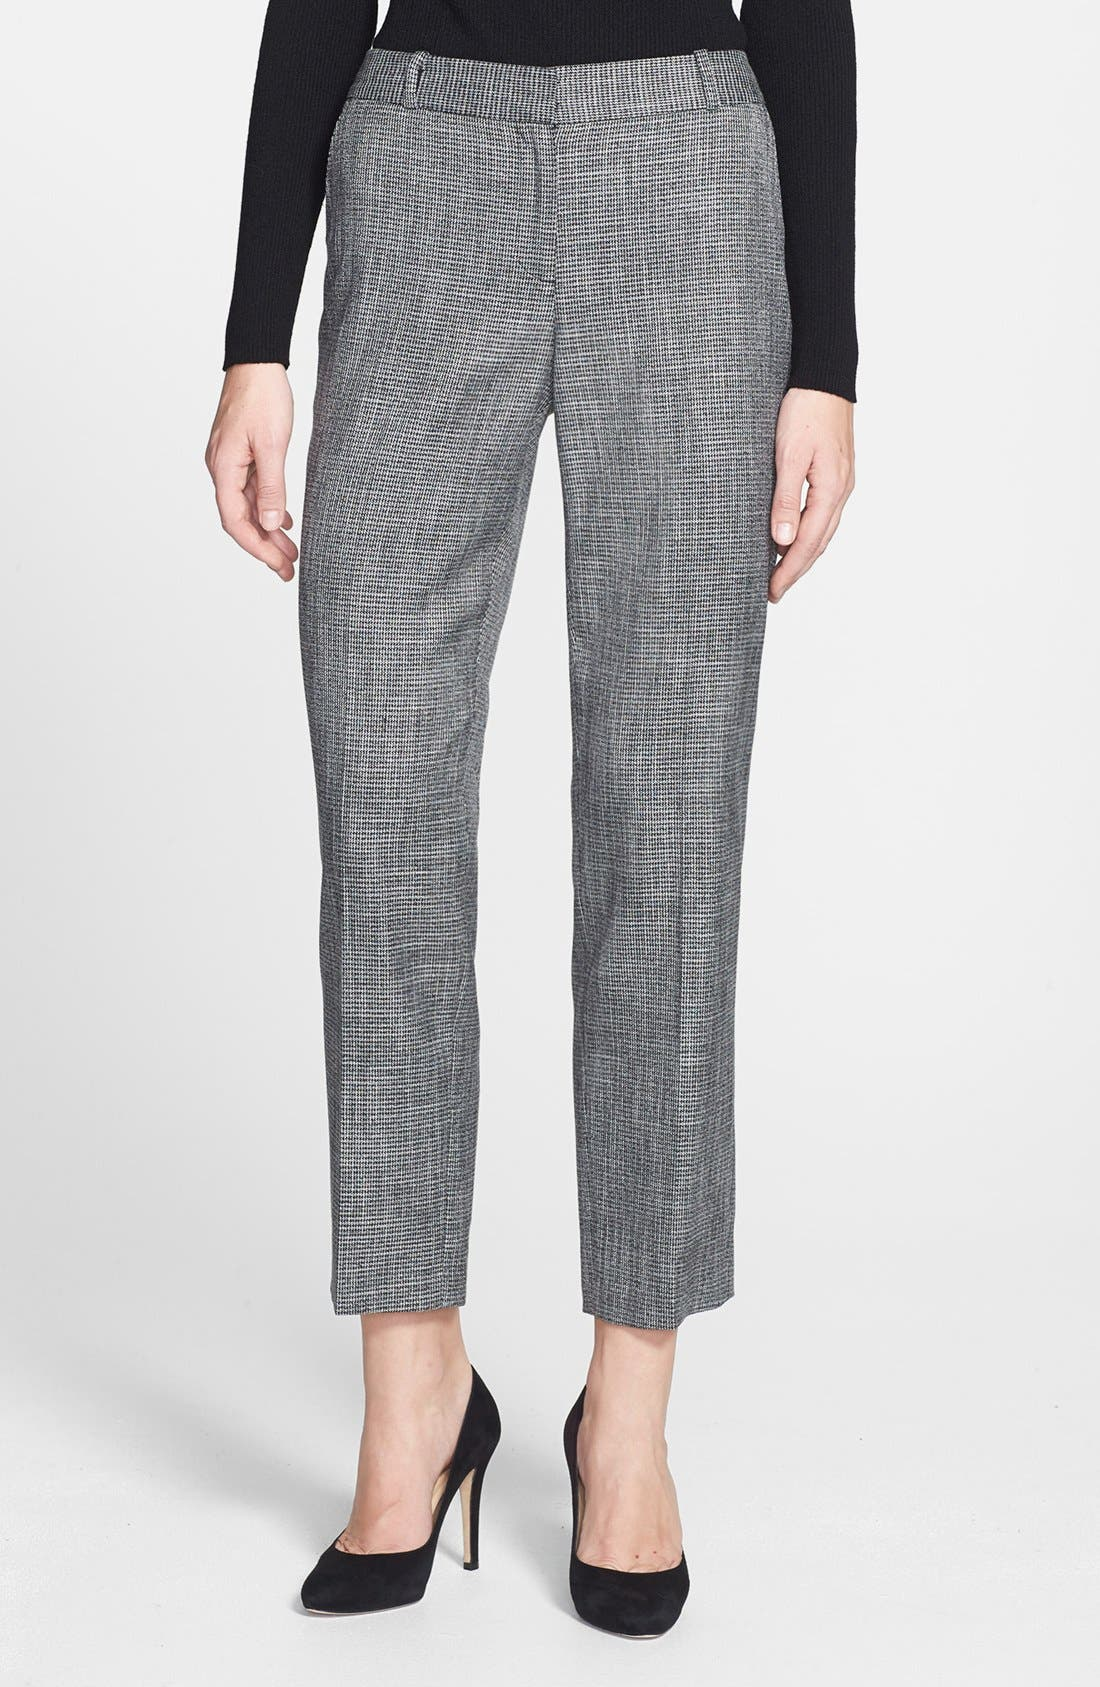 Alternate Image 1 Selected - Classiques Entier® 'Gardenia Houndstooth' Ankle Pants